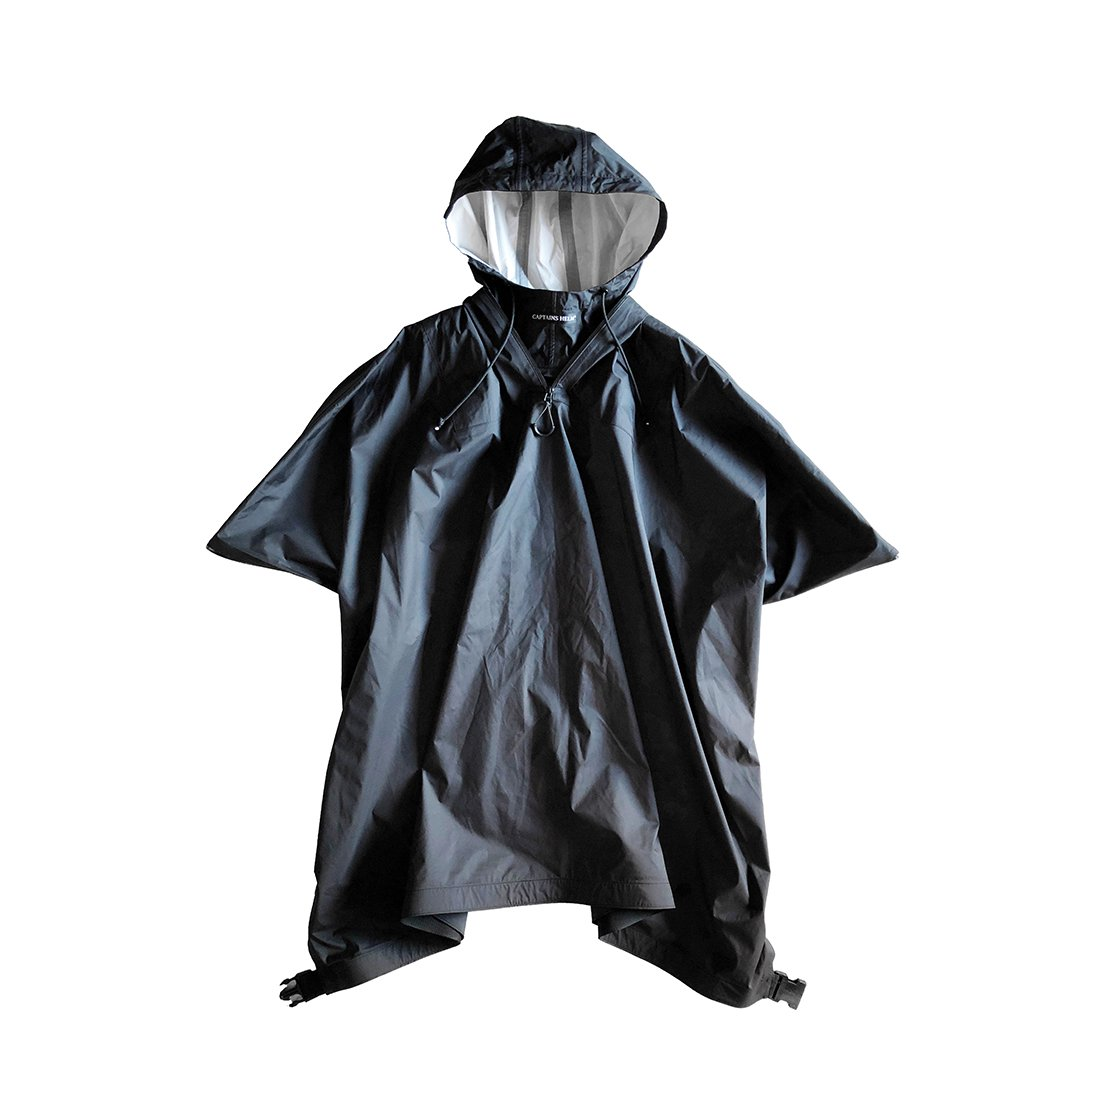 【受注生産ITEM】CAPTAINS HELM #WATER PROOF RAIN PONCHO -BLACK